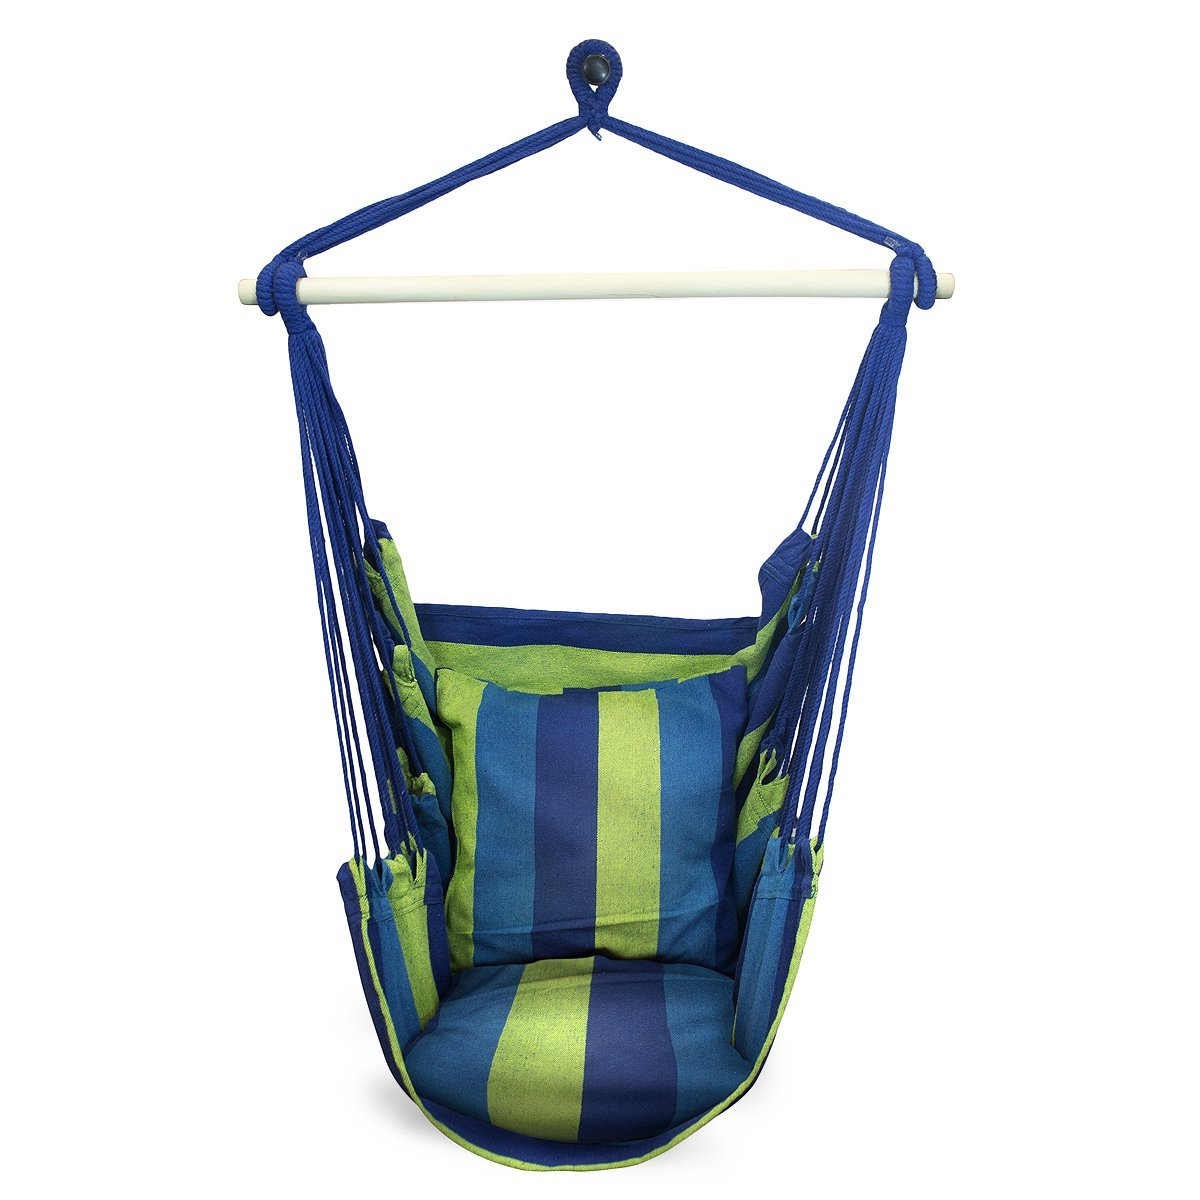 Cotton Porch Swings Intended For Famous Top 10 Best Hammock Chairs And Swings In 2019 Reviews – Thetbpr (View 19 of 25)